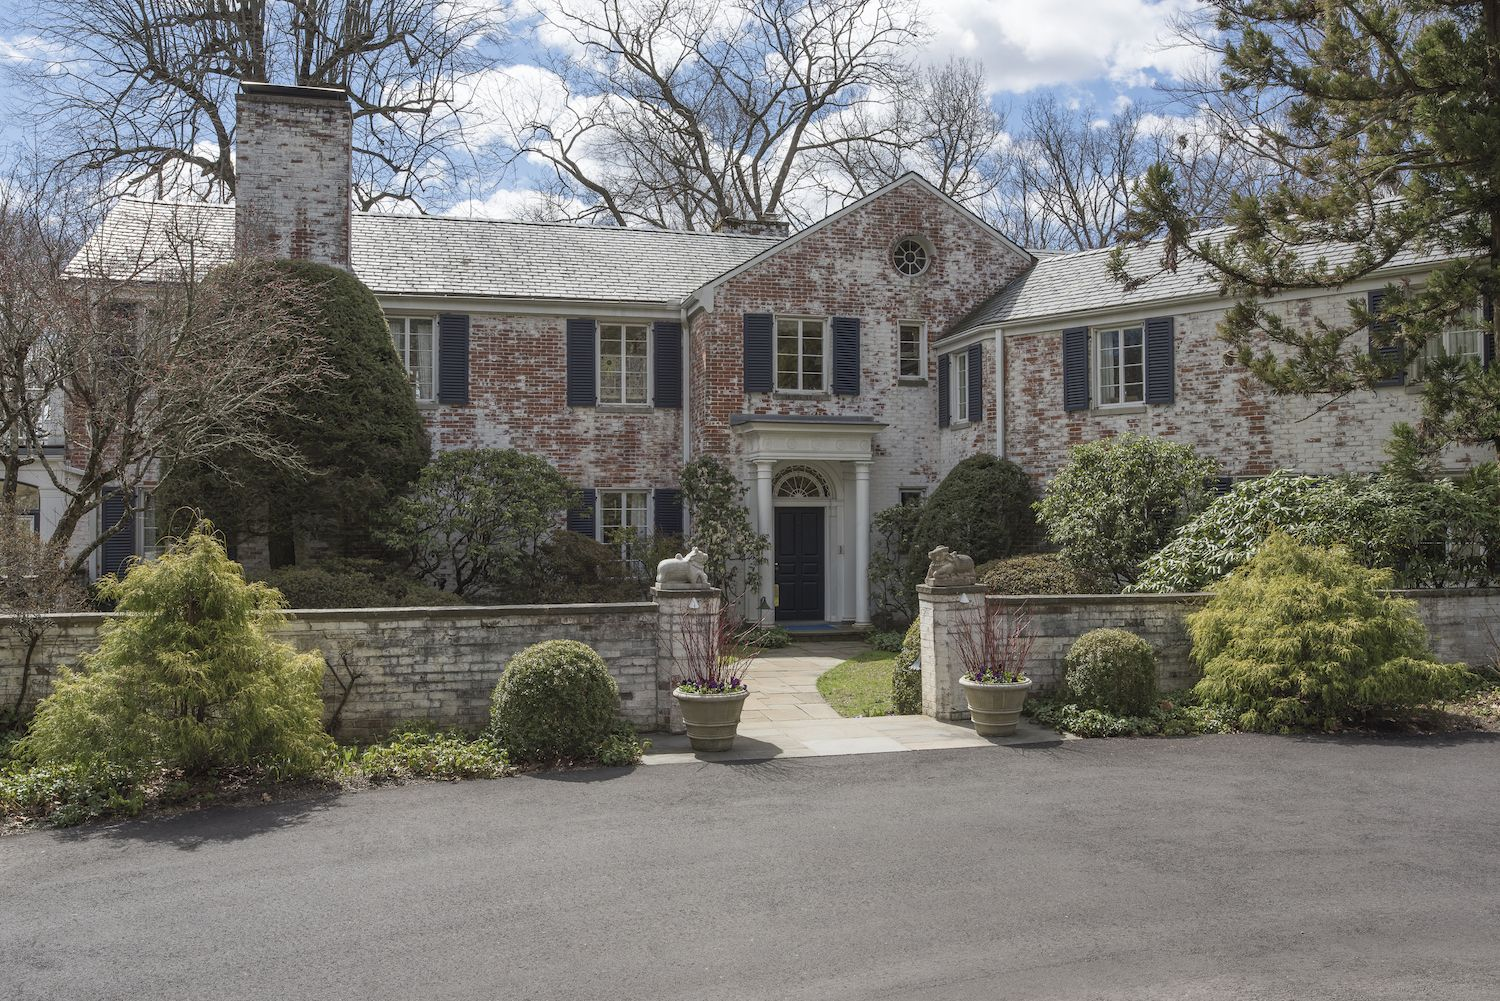 Though extremely secluded, the Georgian-style home is located close to New Canaan center.